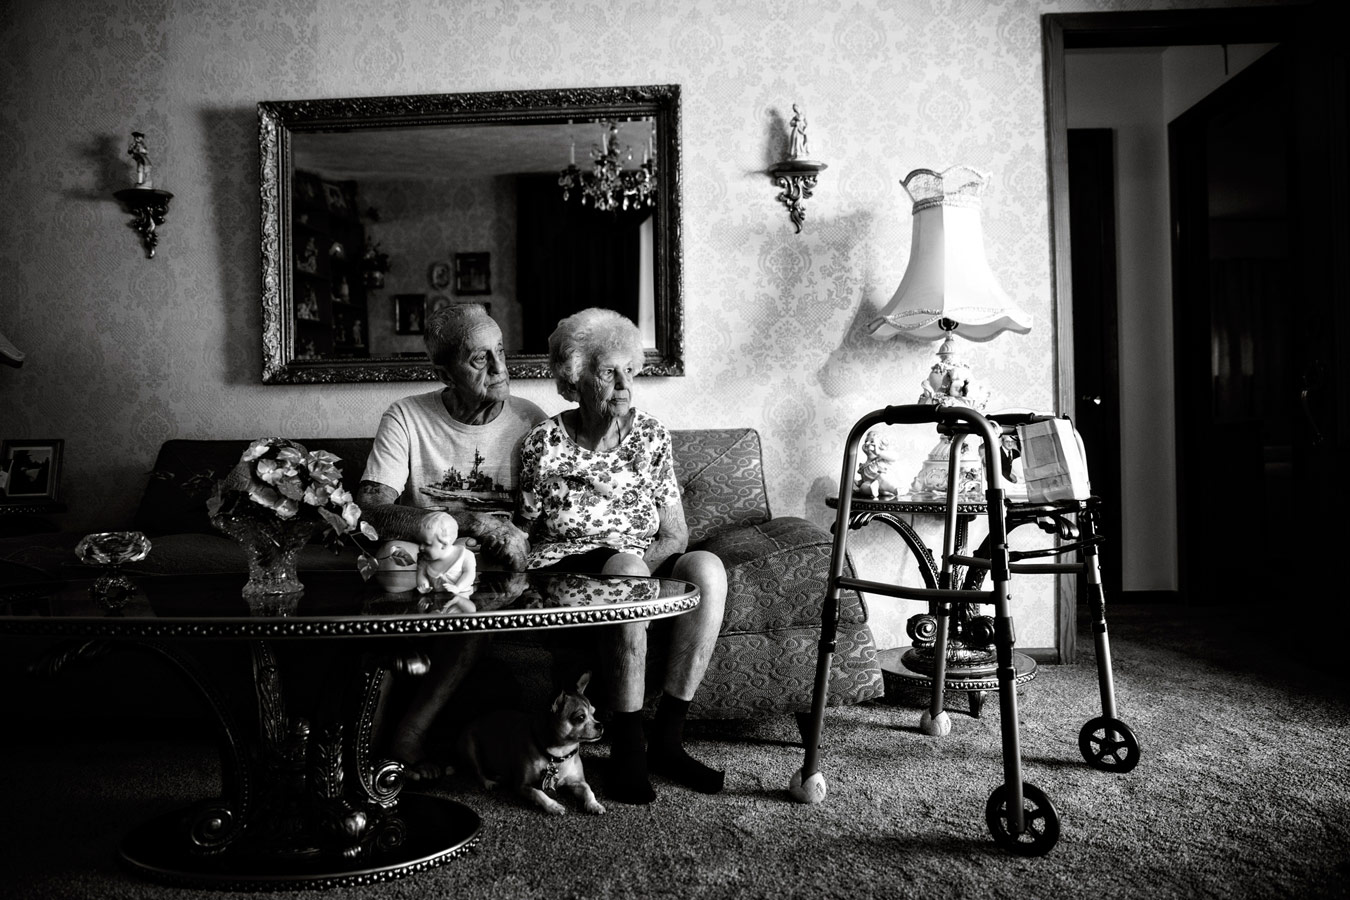 The Last Days, © Collin Richie, Baton Rouge, First Place Commercial, Rangefinder the Portrait